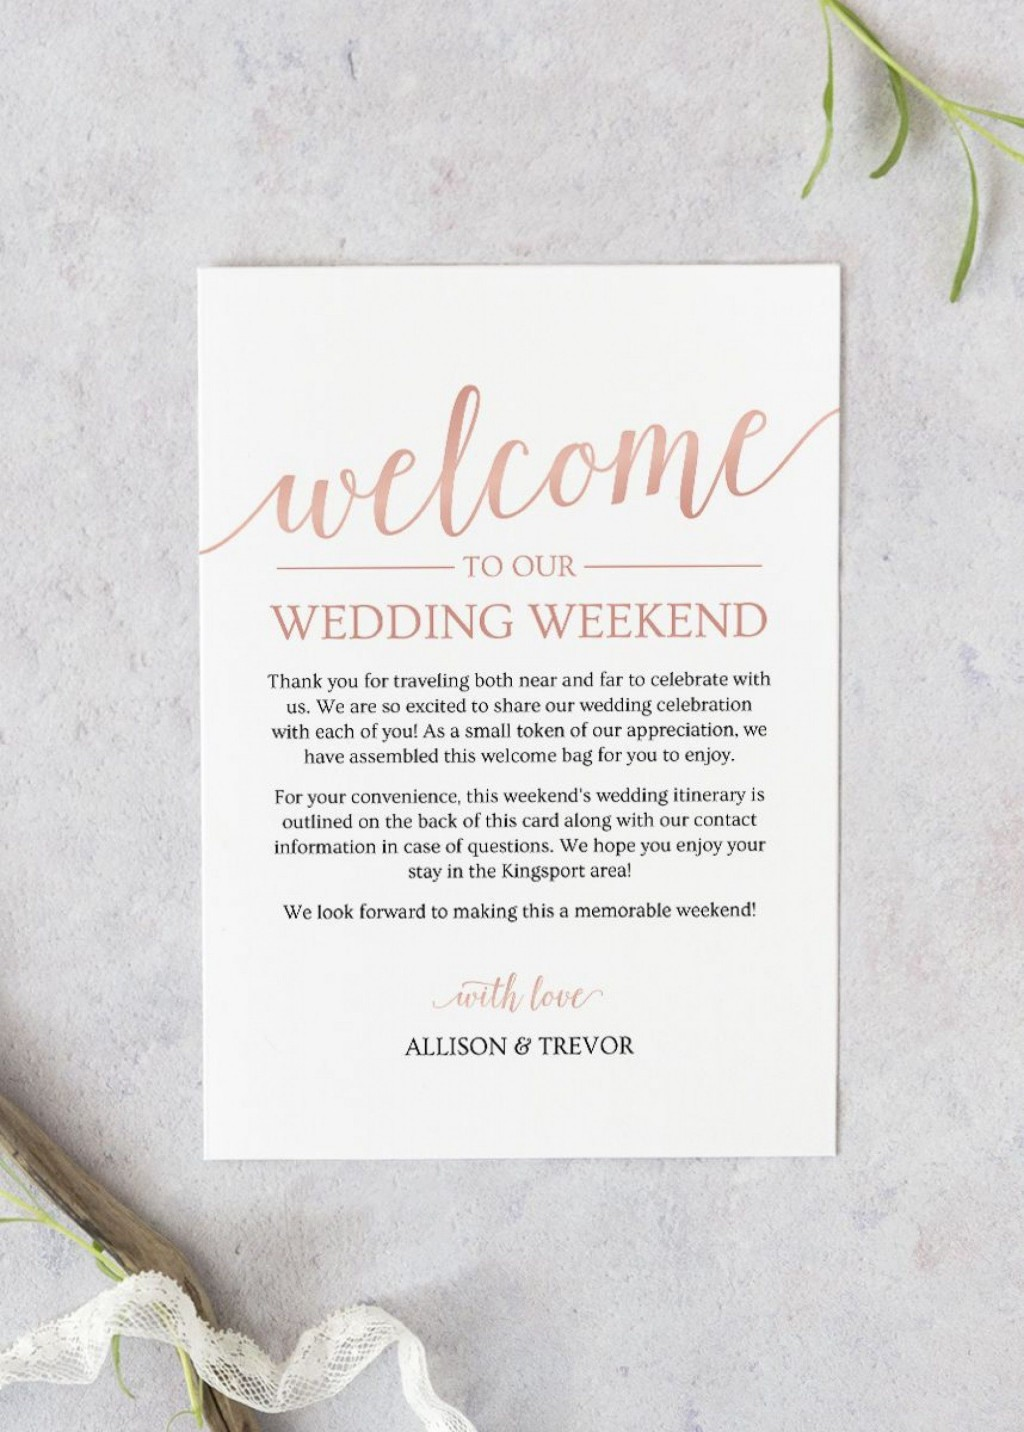 000 Striking Cruise Wedding Welcome Letter Template High Definition Large